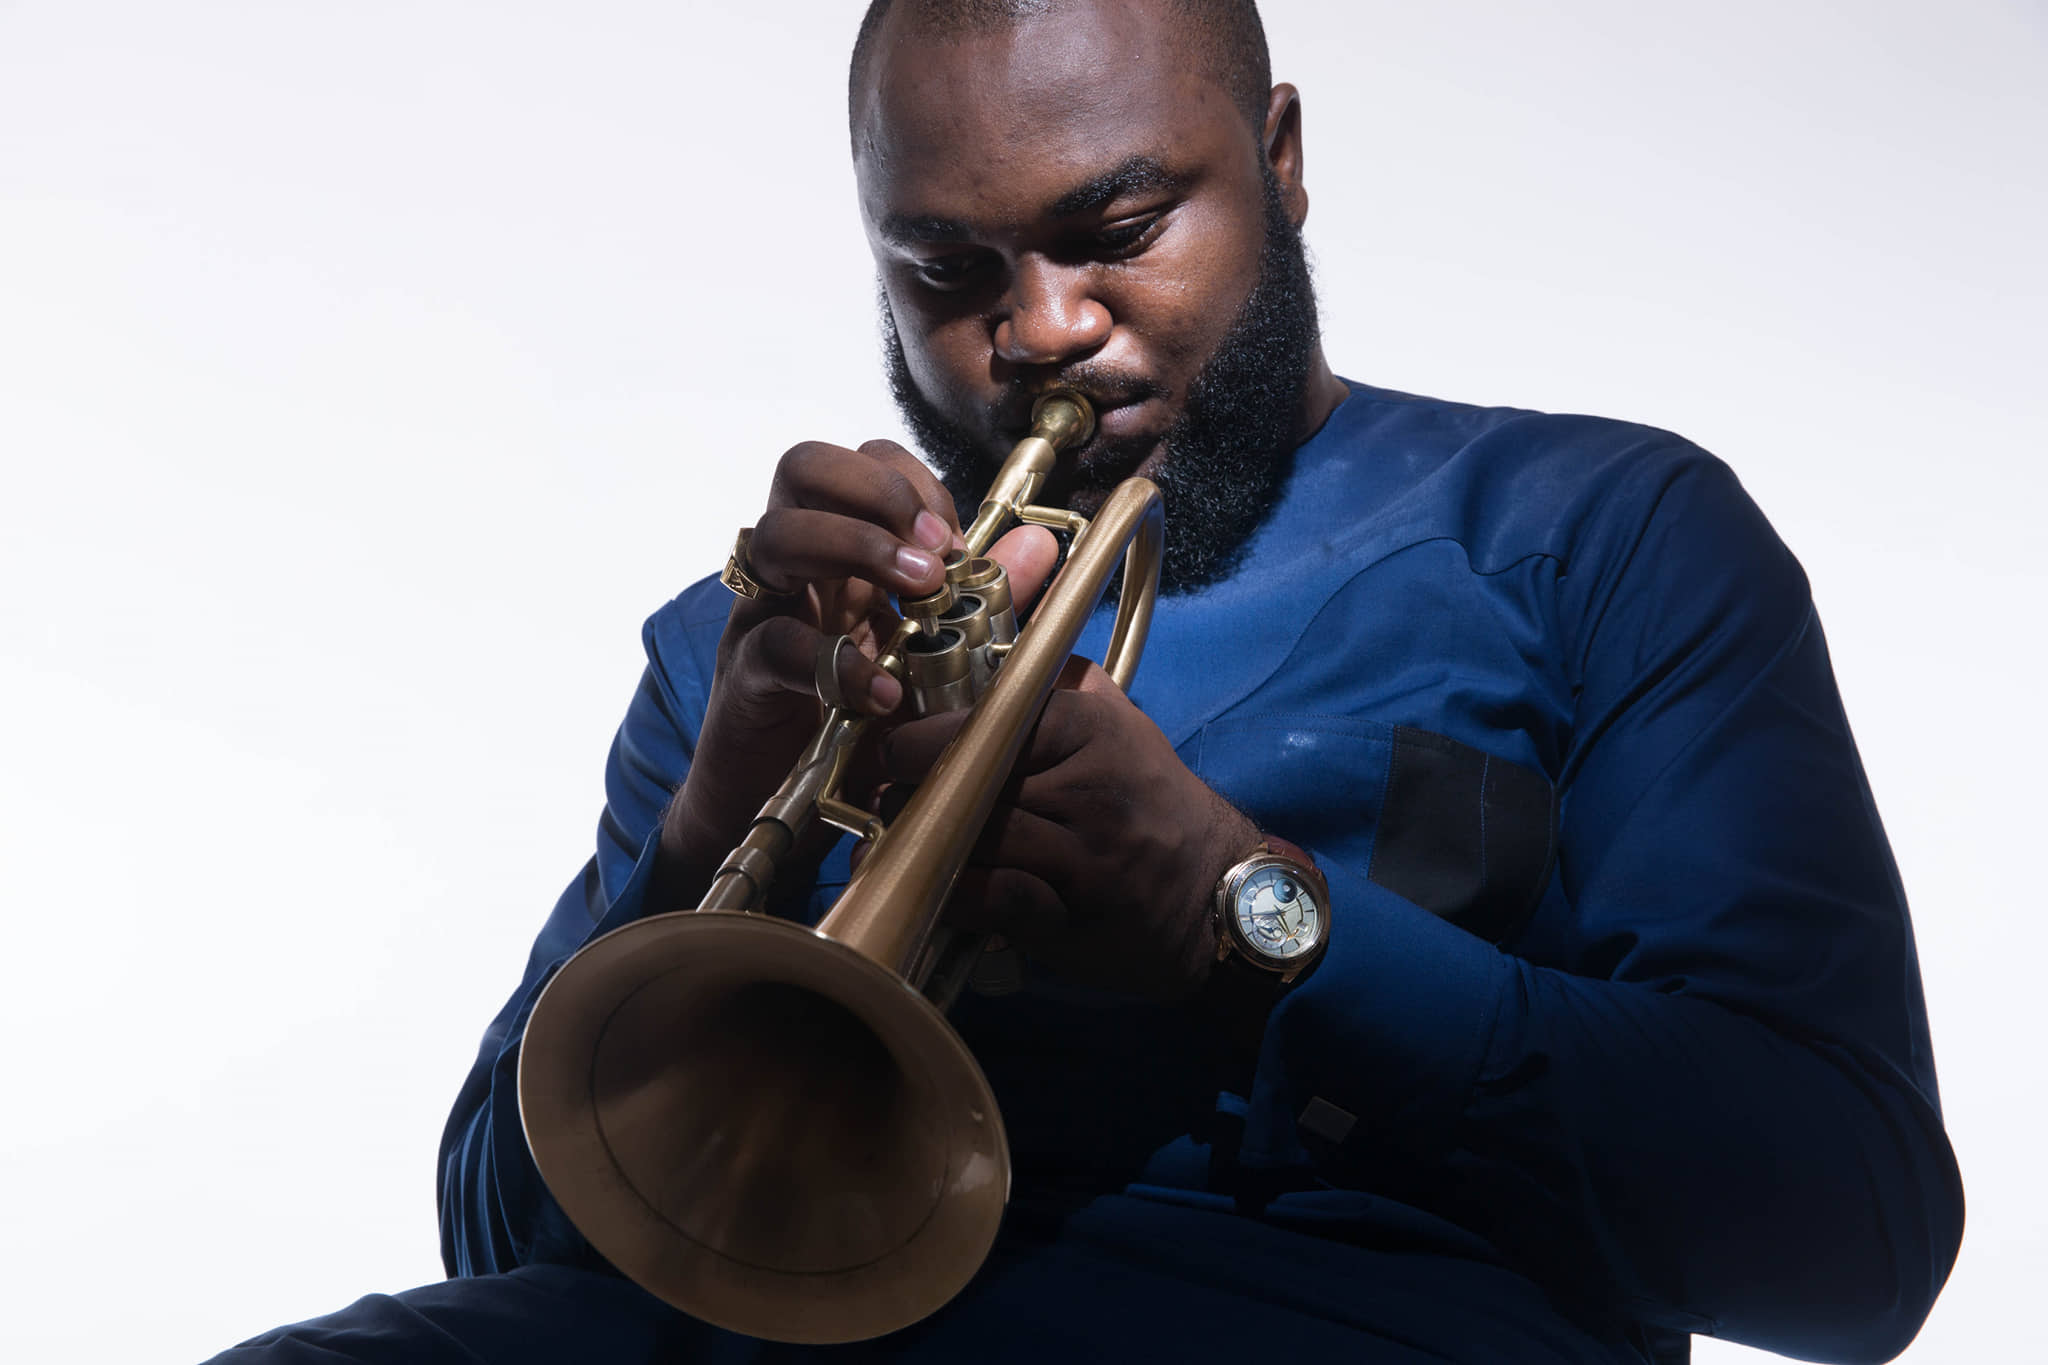 Etuk Ubong, The truth, with his trumpet